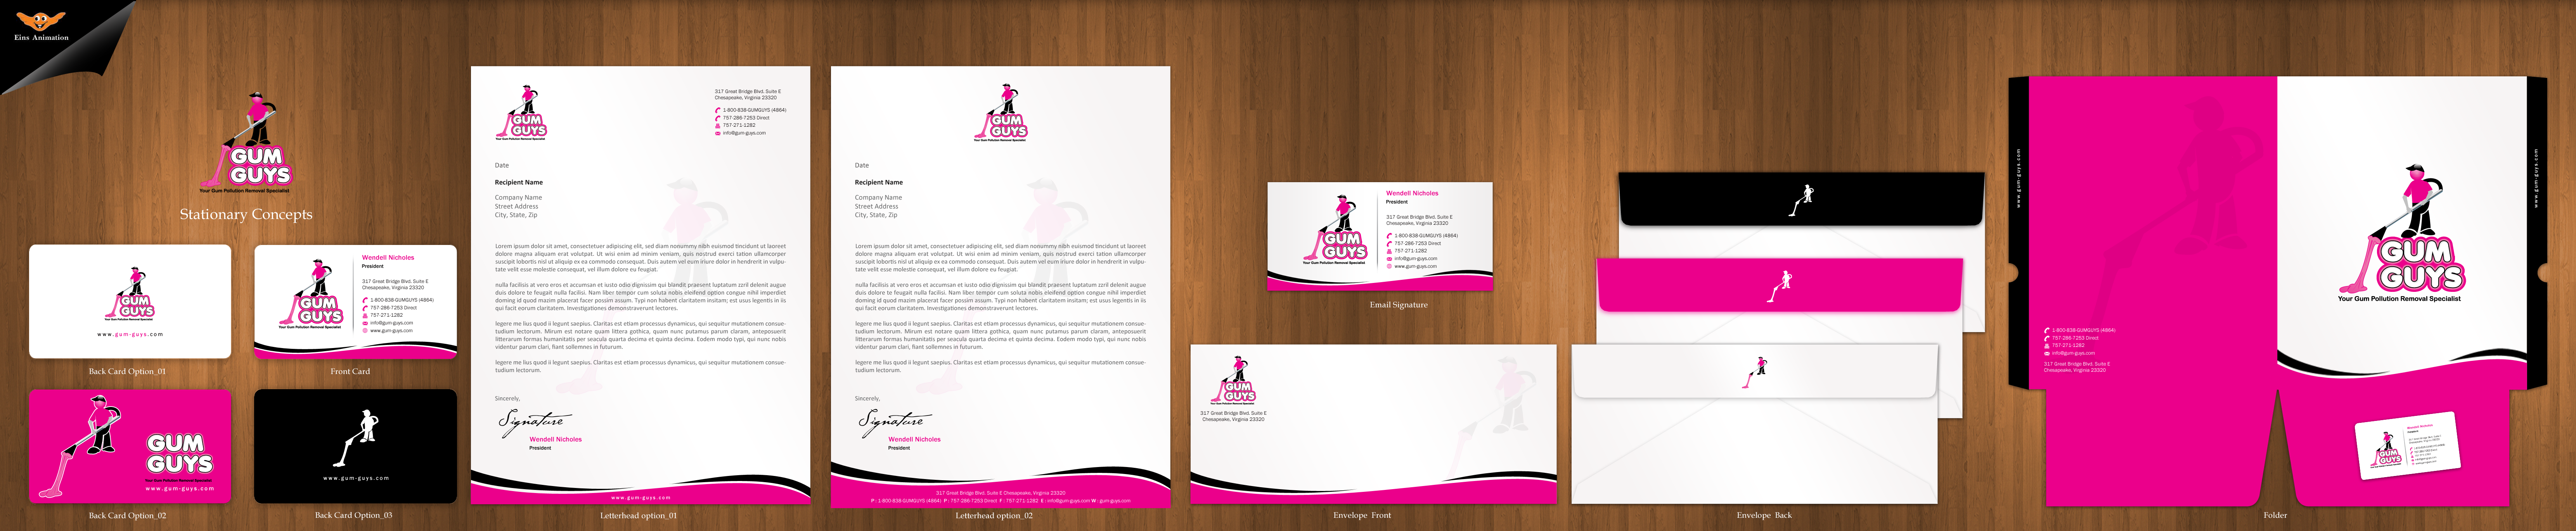 *Business Card Concept For Gum (Pollution) Removal Company* - Cleaning